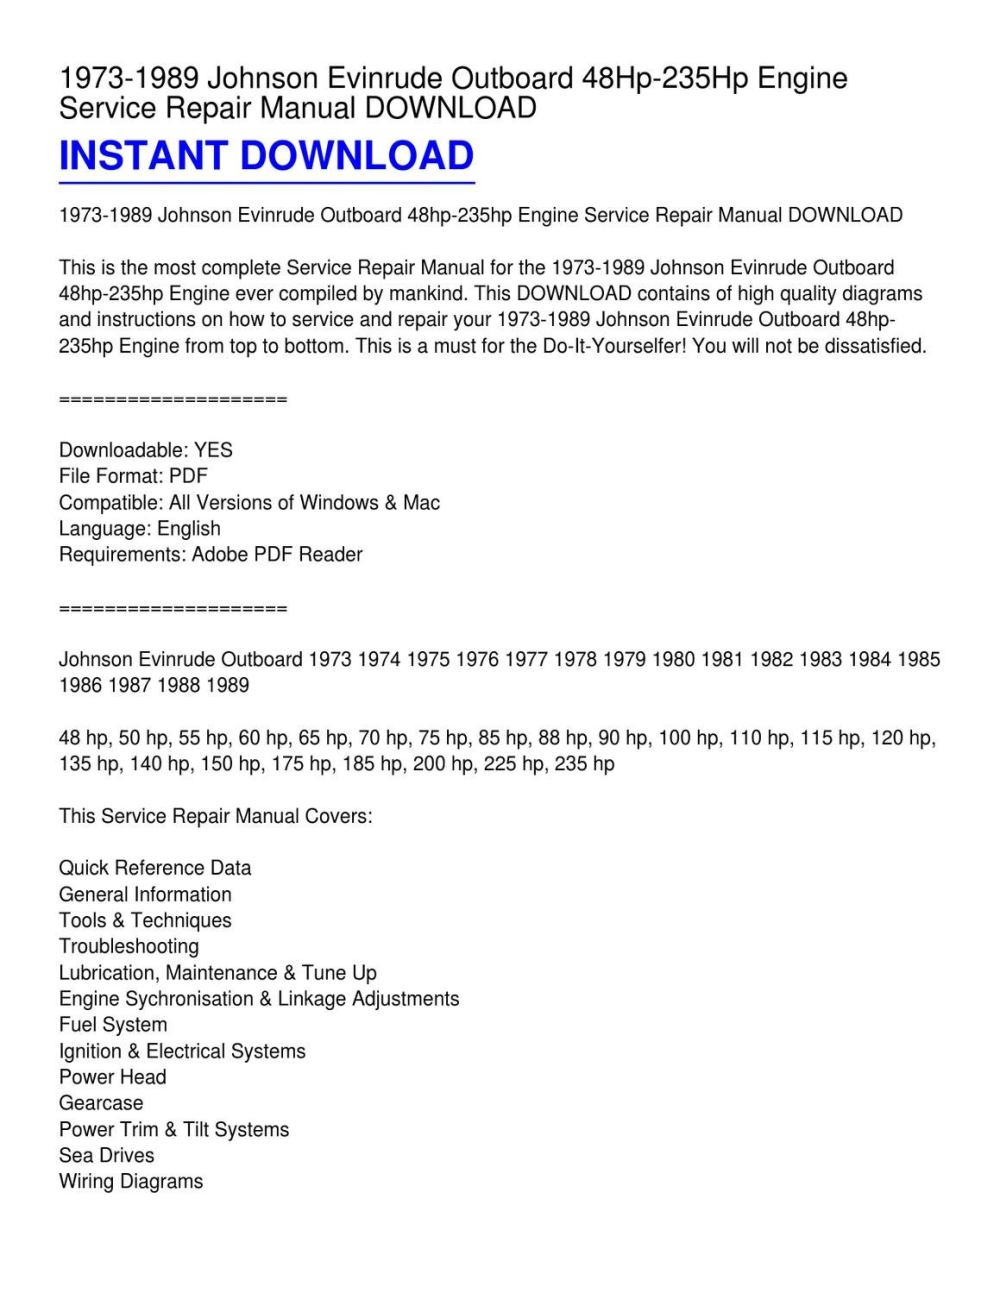 medium resolution of 1973 1989 johnson evinrude outboard 48hp 235hp engine service repair manual download by vernon